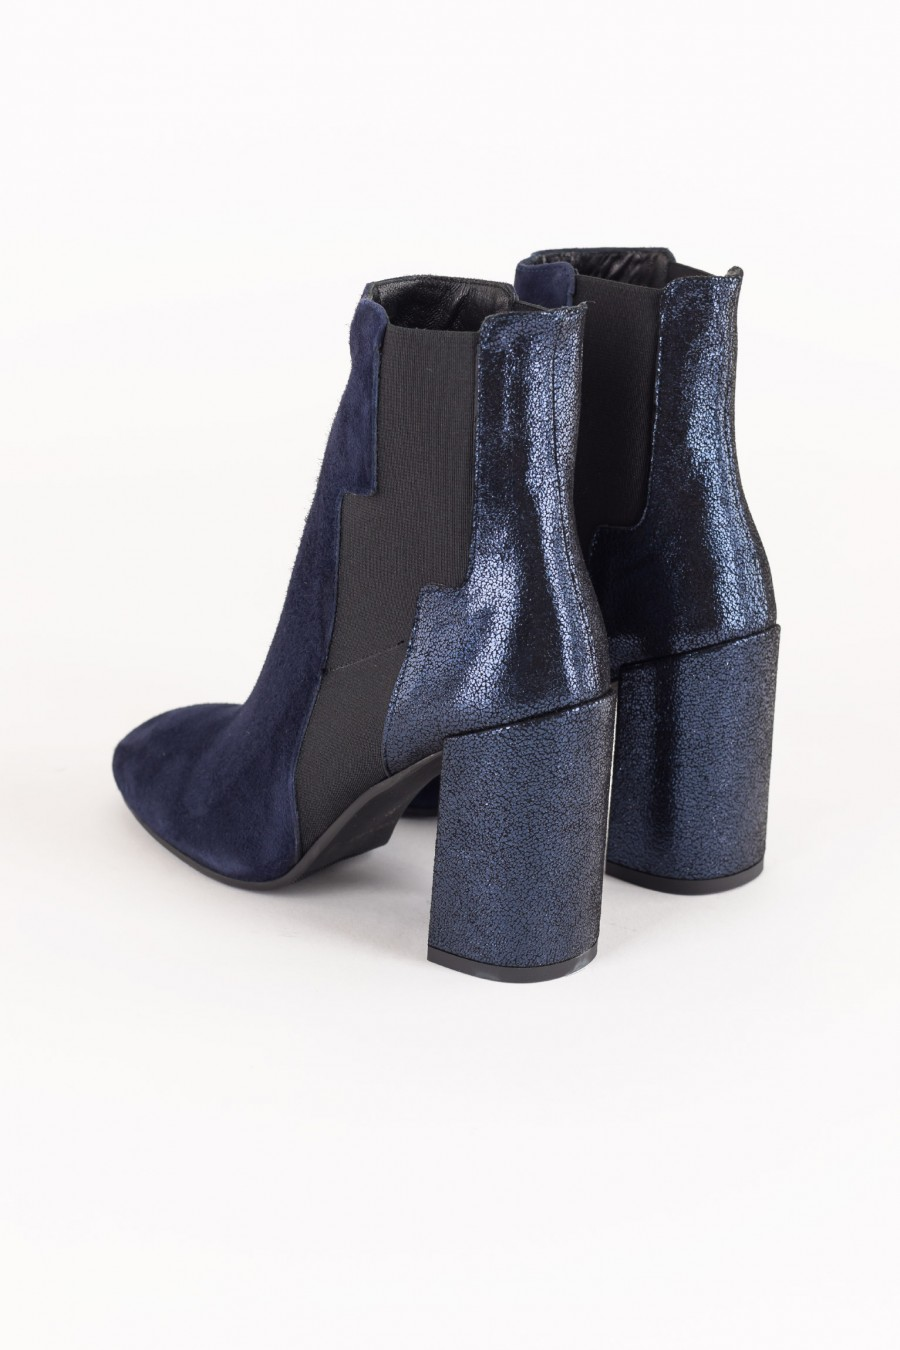 Blue galaxy ankle boots